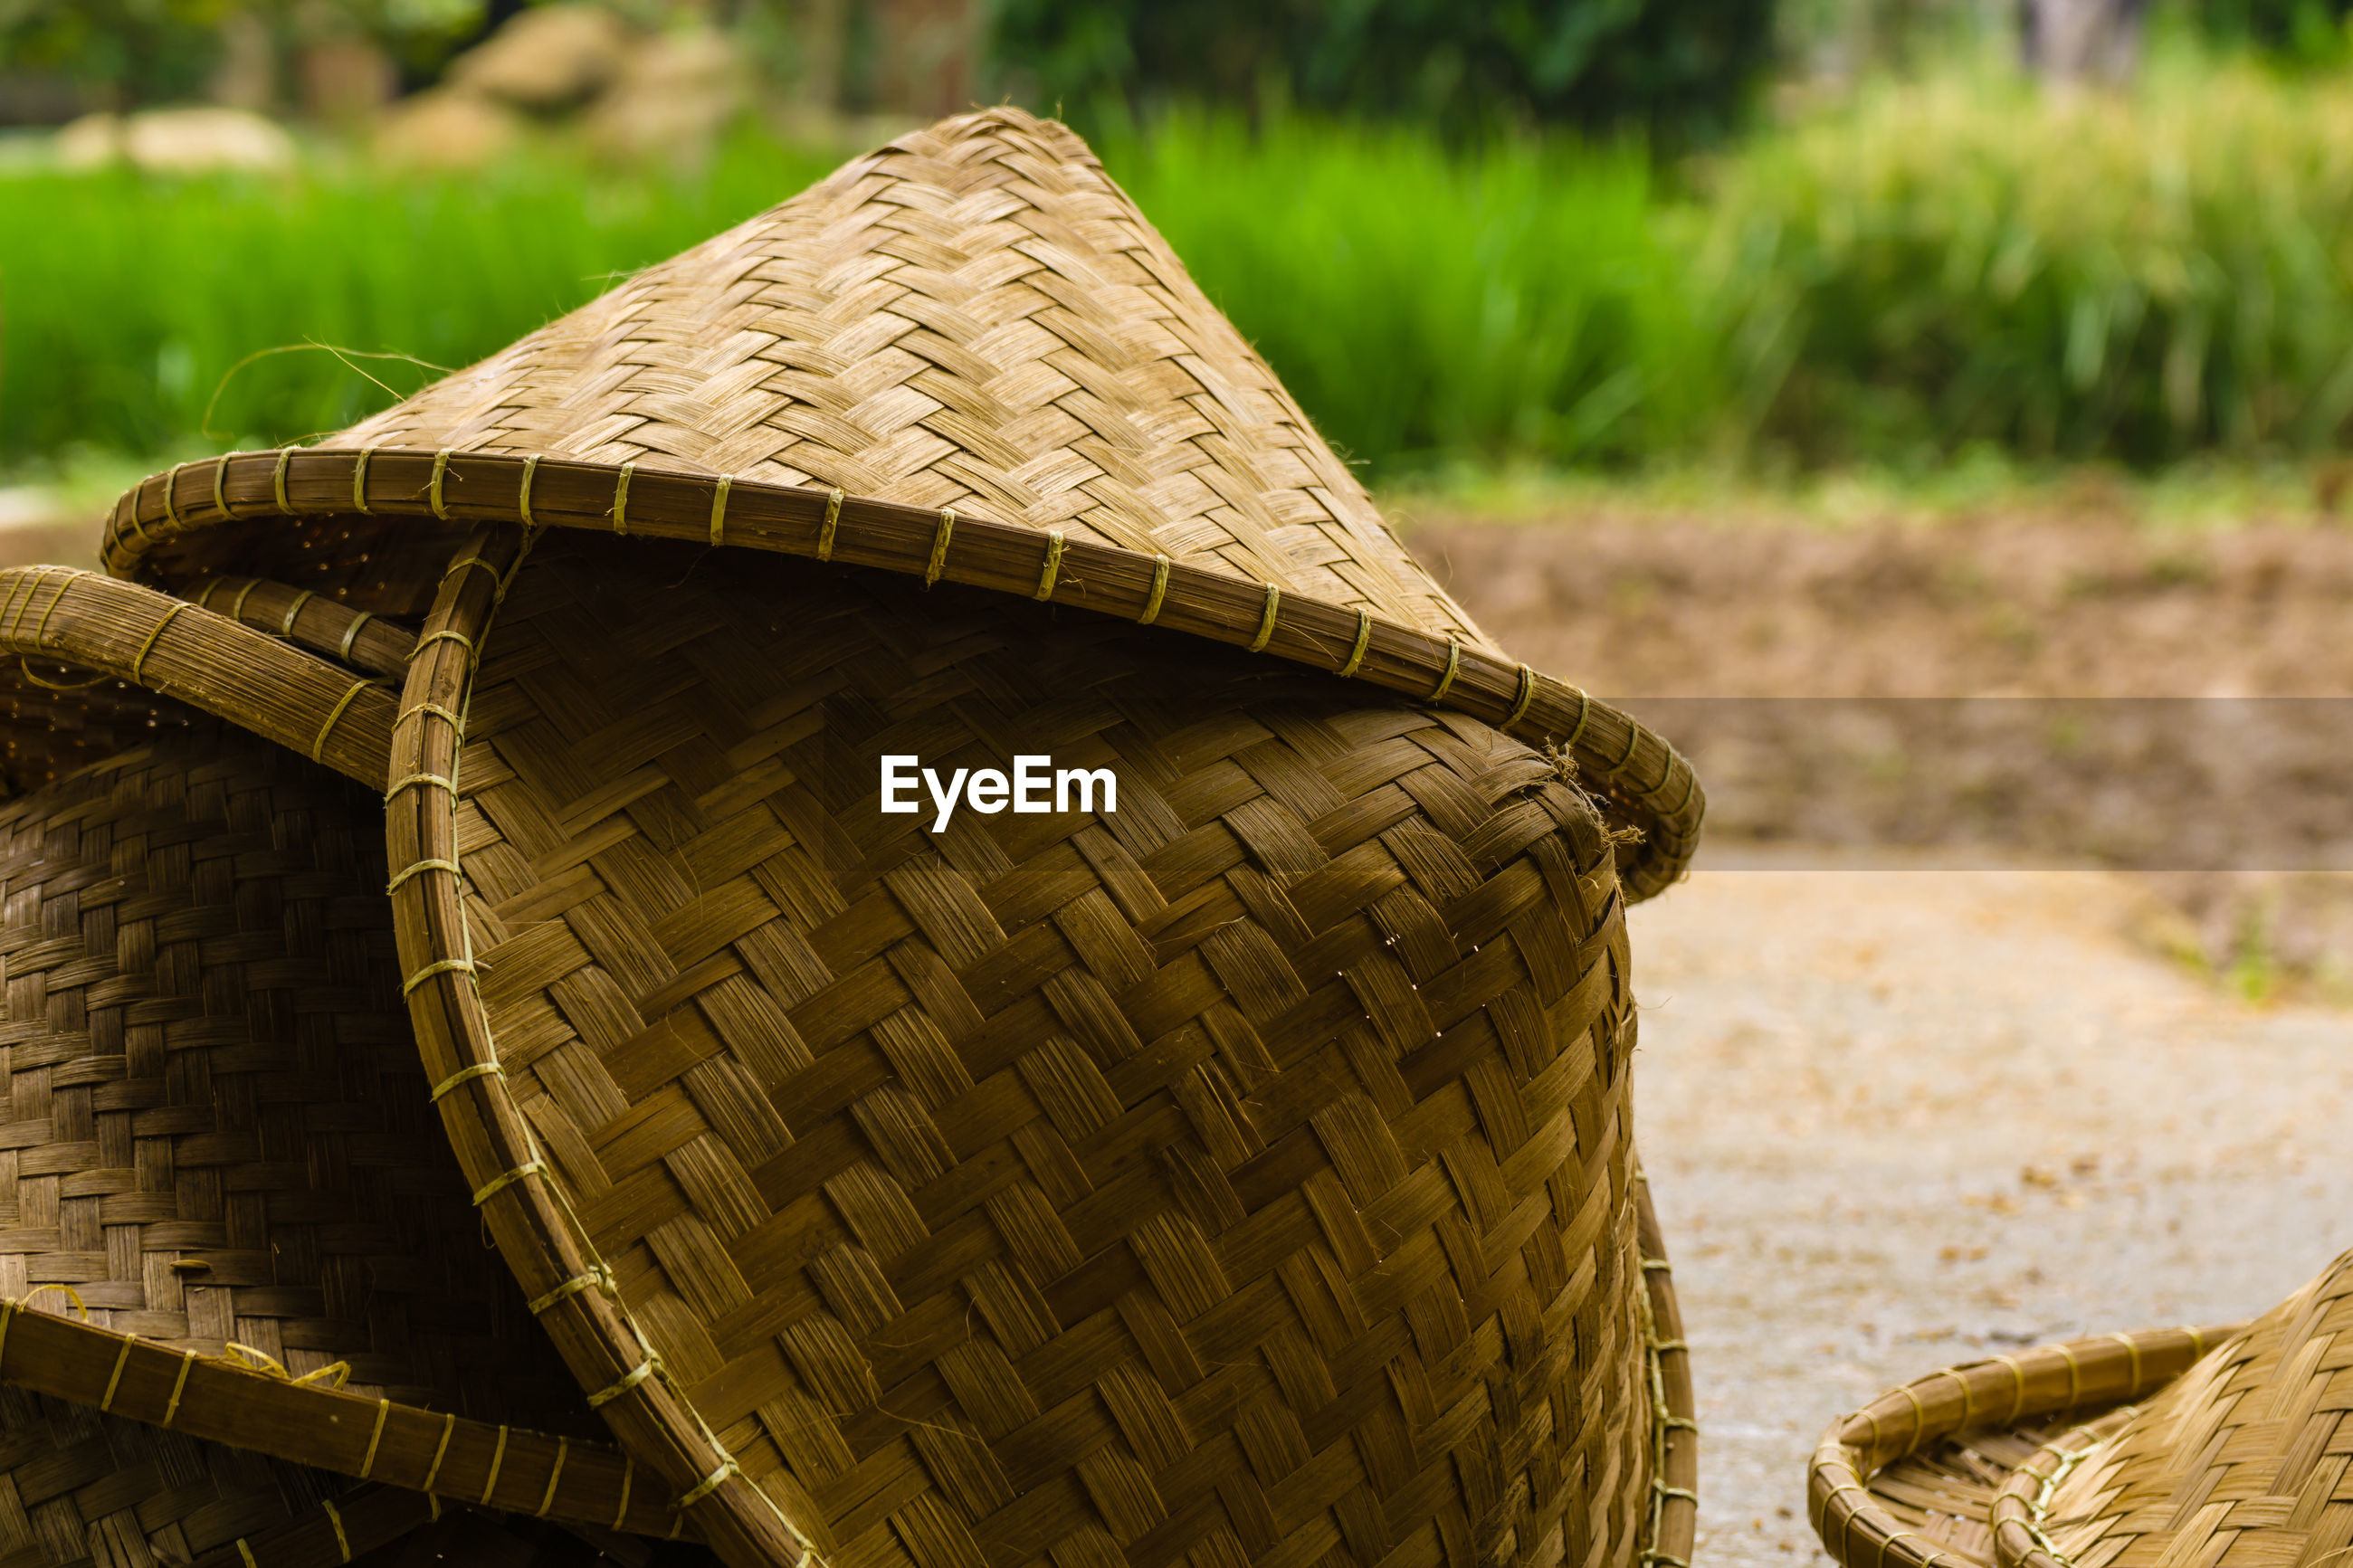 The farmers hat, made from woven bamboo when he works in the rice fields